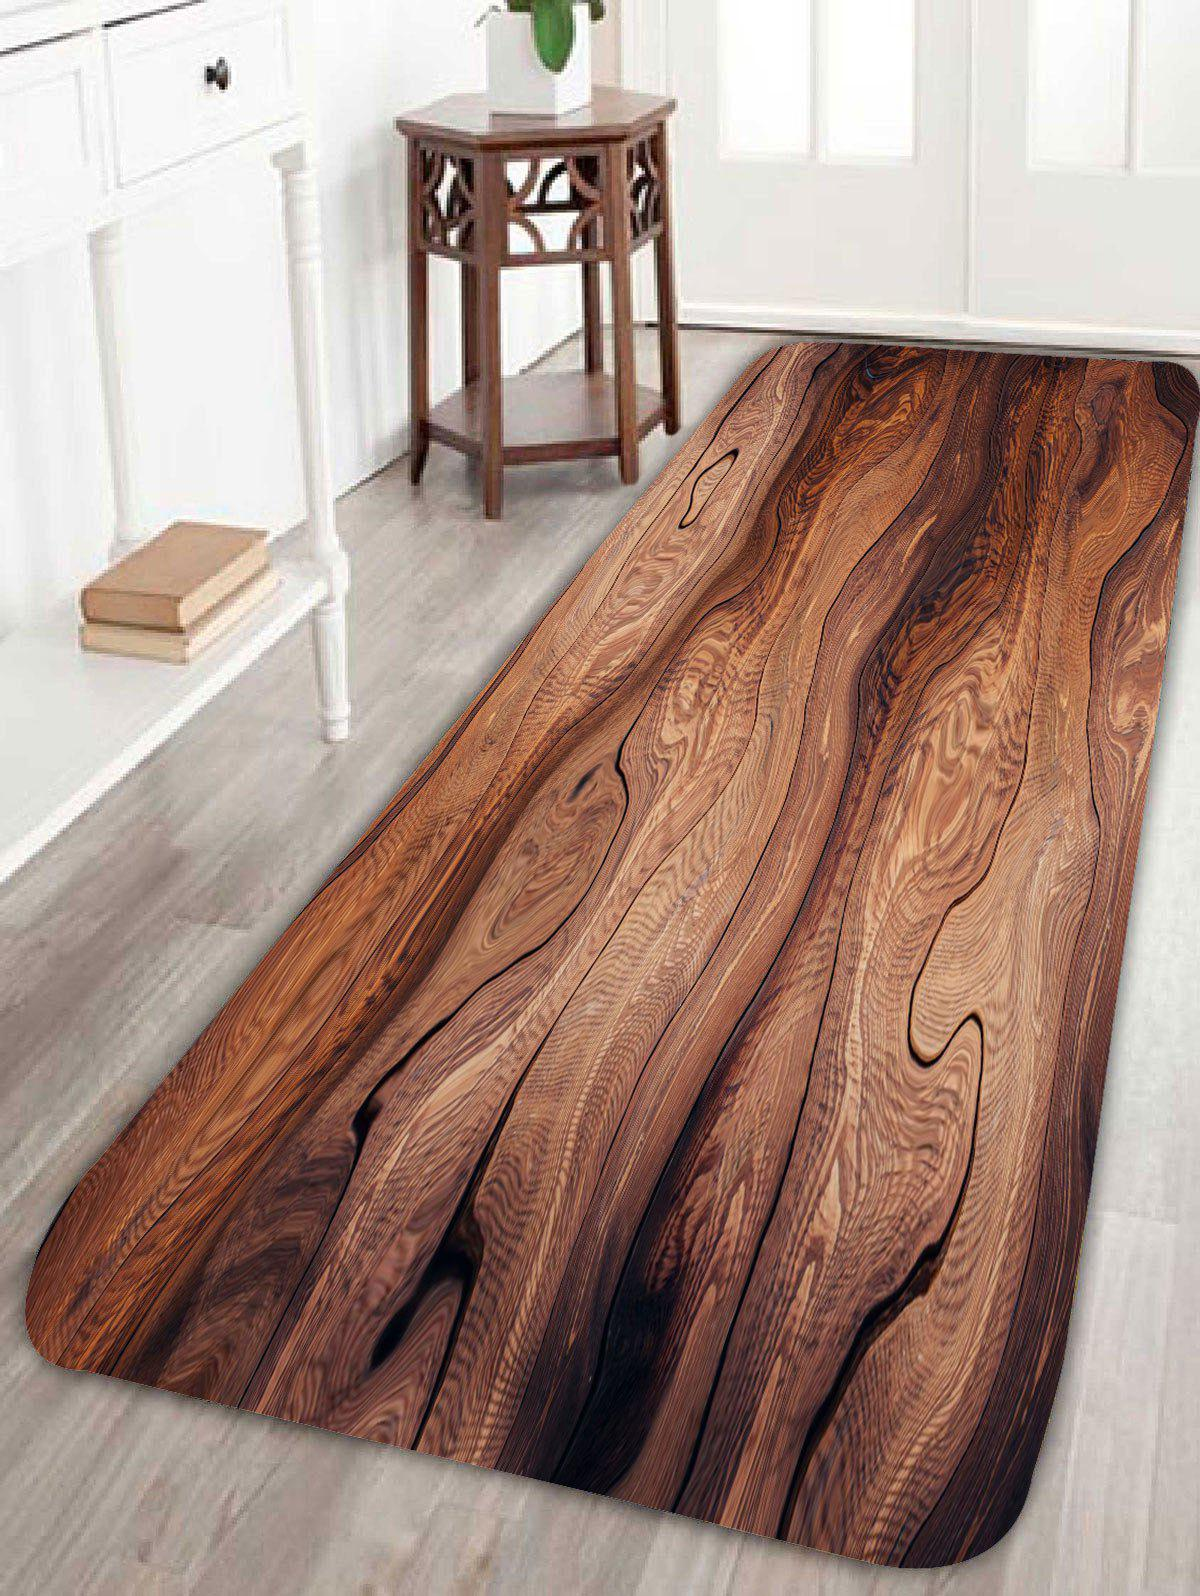 Goodgrain Large Kitchen Bathroom Floor Area RugHOME<br><br>Size: W24 INCH * L71 INCH; Color: BROWN; Products Type: Bath rugs; Materials: Coral FLeece; Pattern: Print; Style: Vintage; Shape: Rectangle; Package Contents: 1 x Rug;